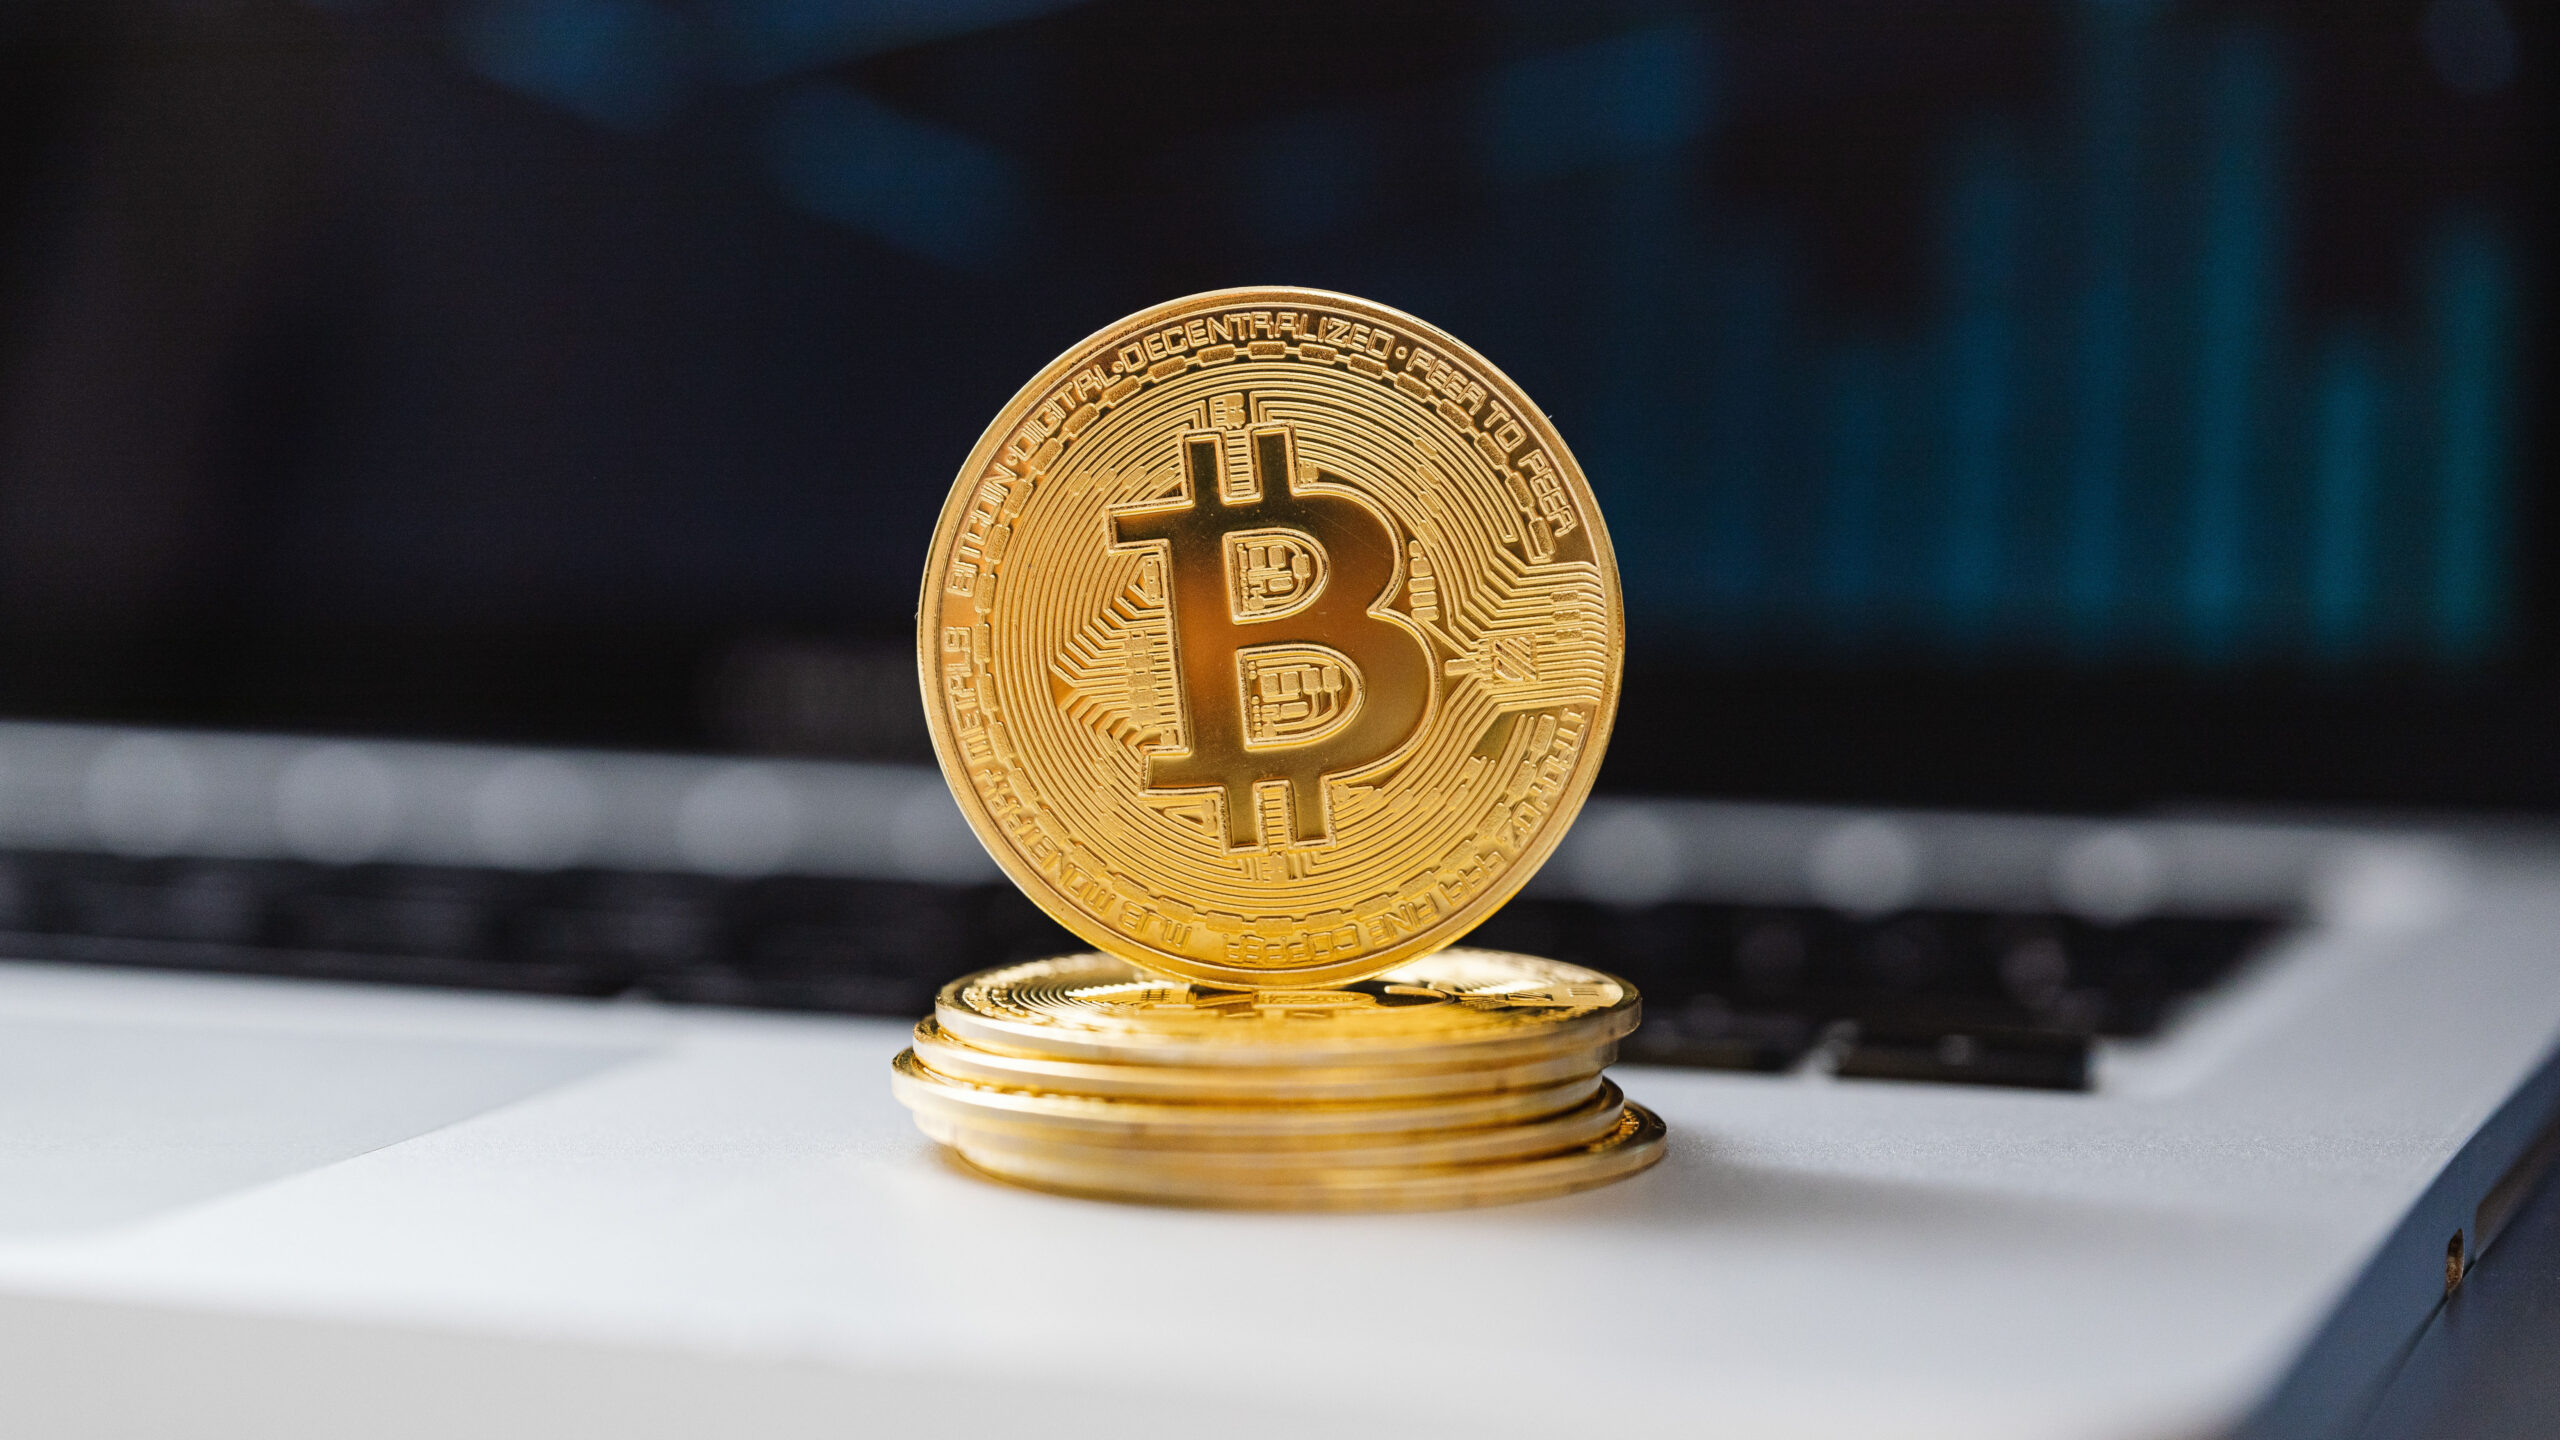 Gold coin with bitcoin symbol is balanced upright on top of a small pile of 5 more coins. The pile appears to be on top of a laptop keyboard.